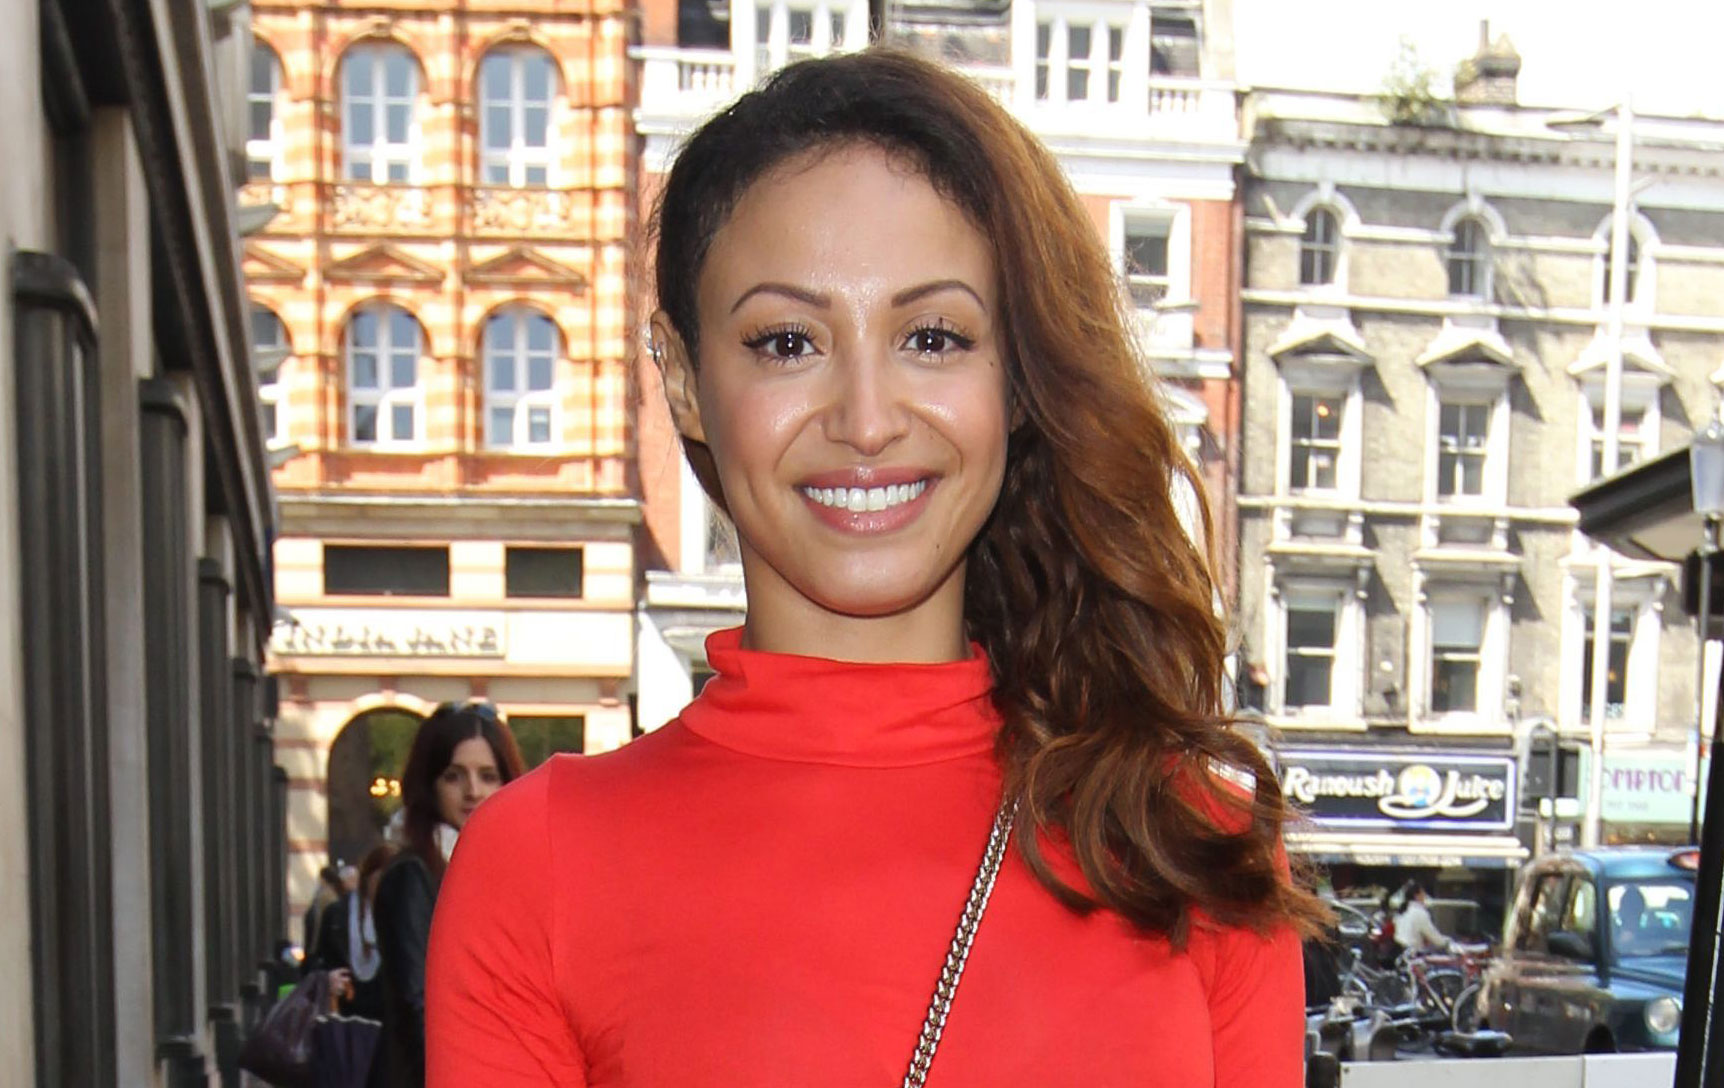 Video Amelle Berrabah nudes (36 photos), Topless, Bikini, Twitter, panties 2006